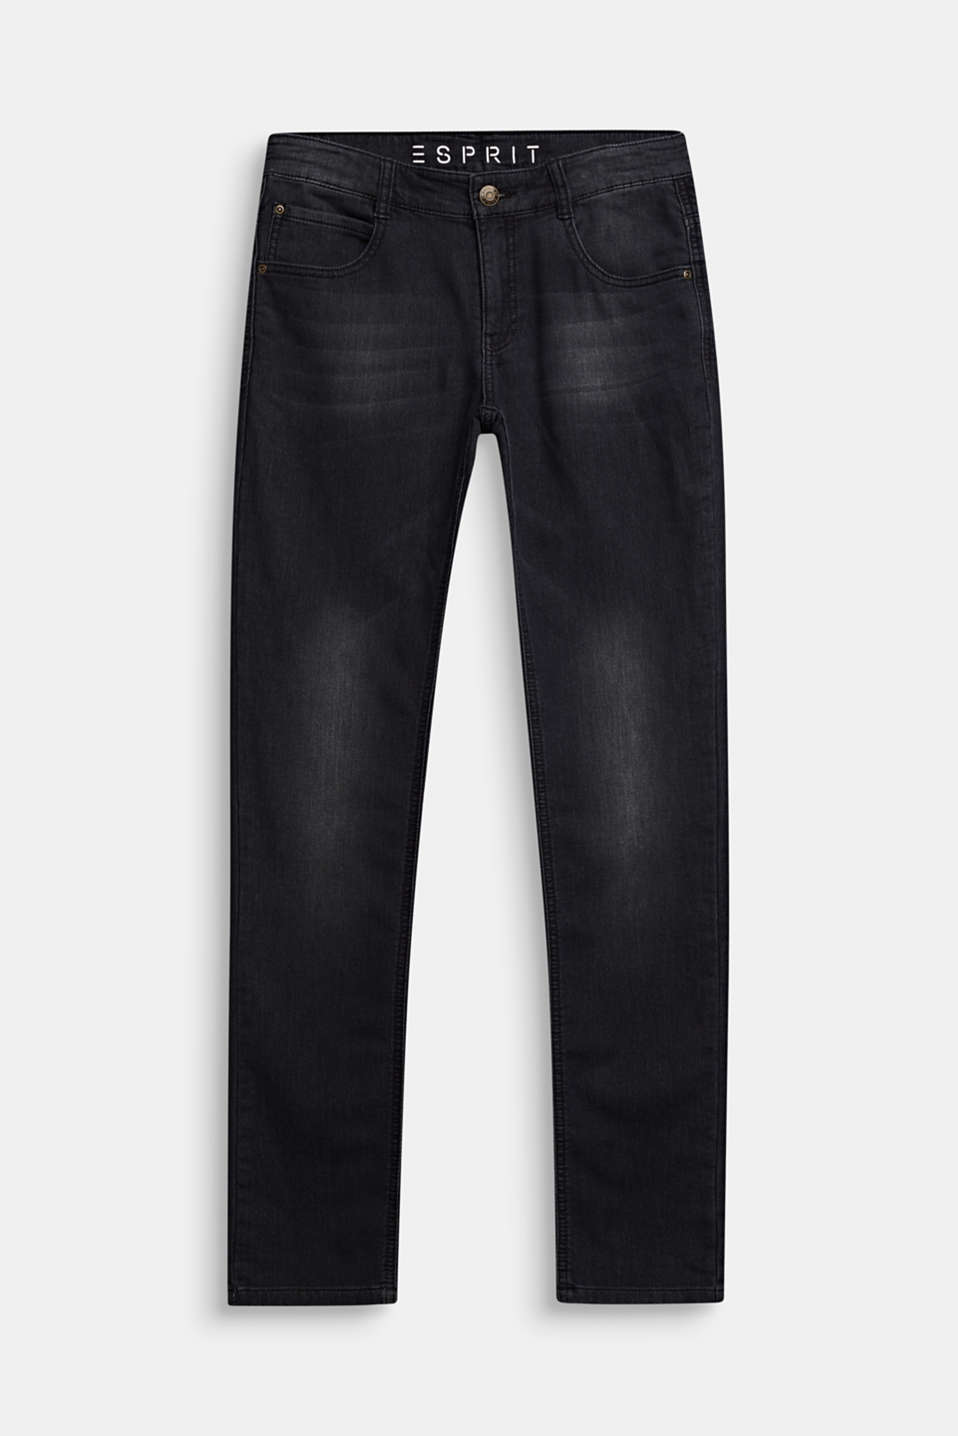 Esprit - Black jeans in comfy tracksuit fabric